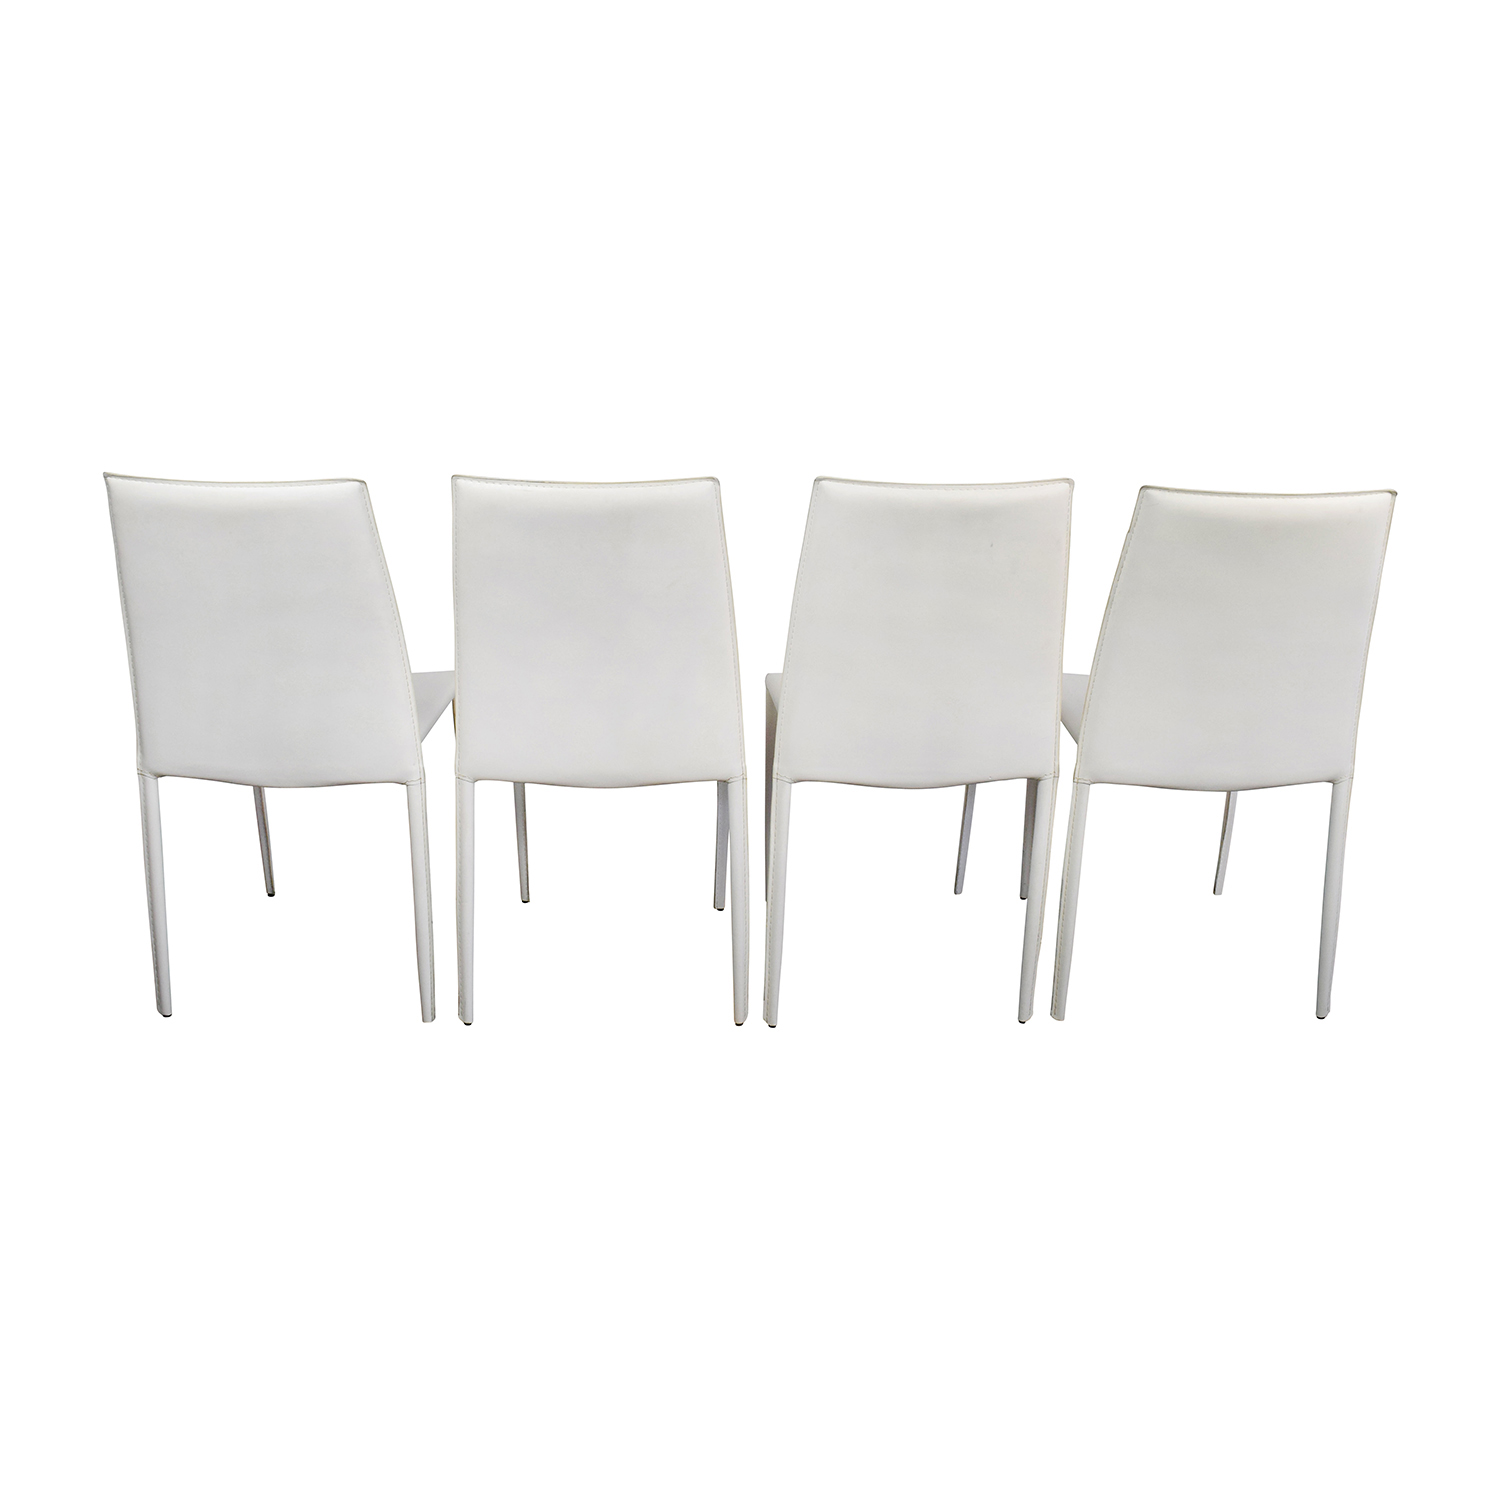 Surprising 77 Off Allmodern All Modern White Leather Dining Chairs Chairs Caraccident5 Cool Chair Designs And Ideas Caraccident5Info